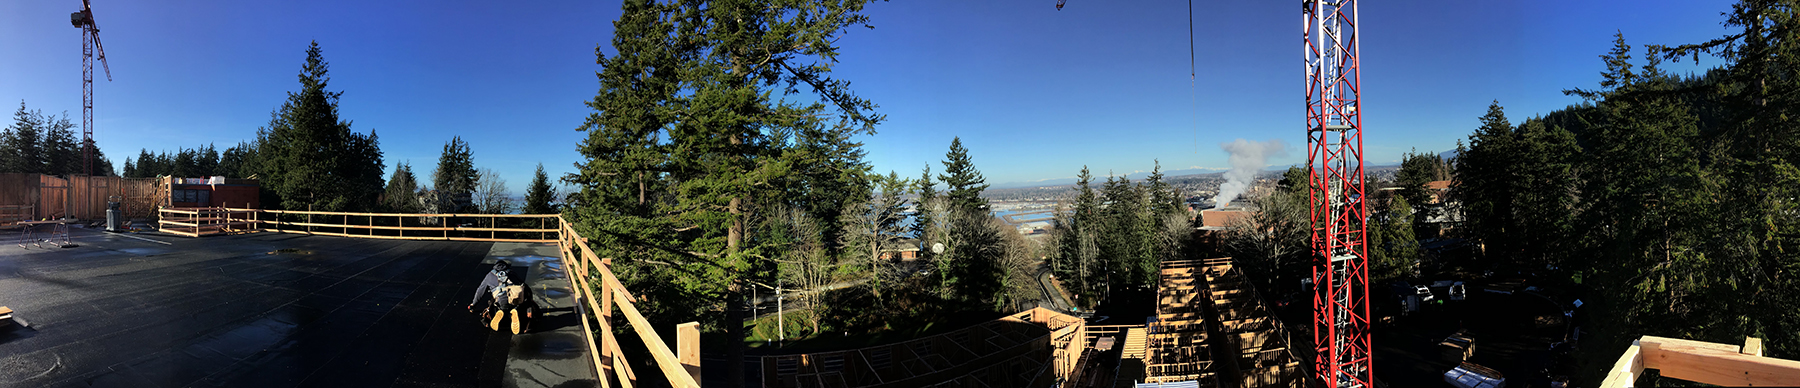 Panorama view of the new residence hall construction site